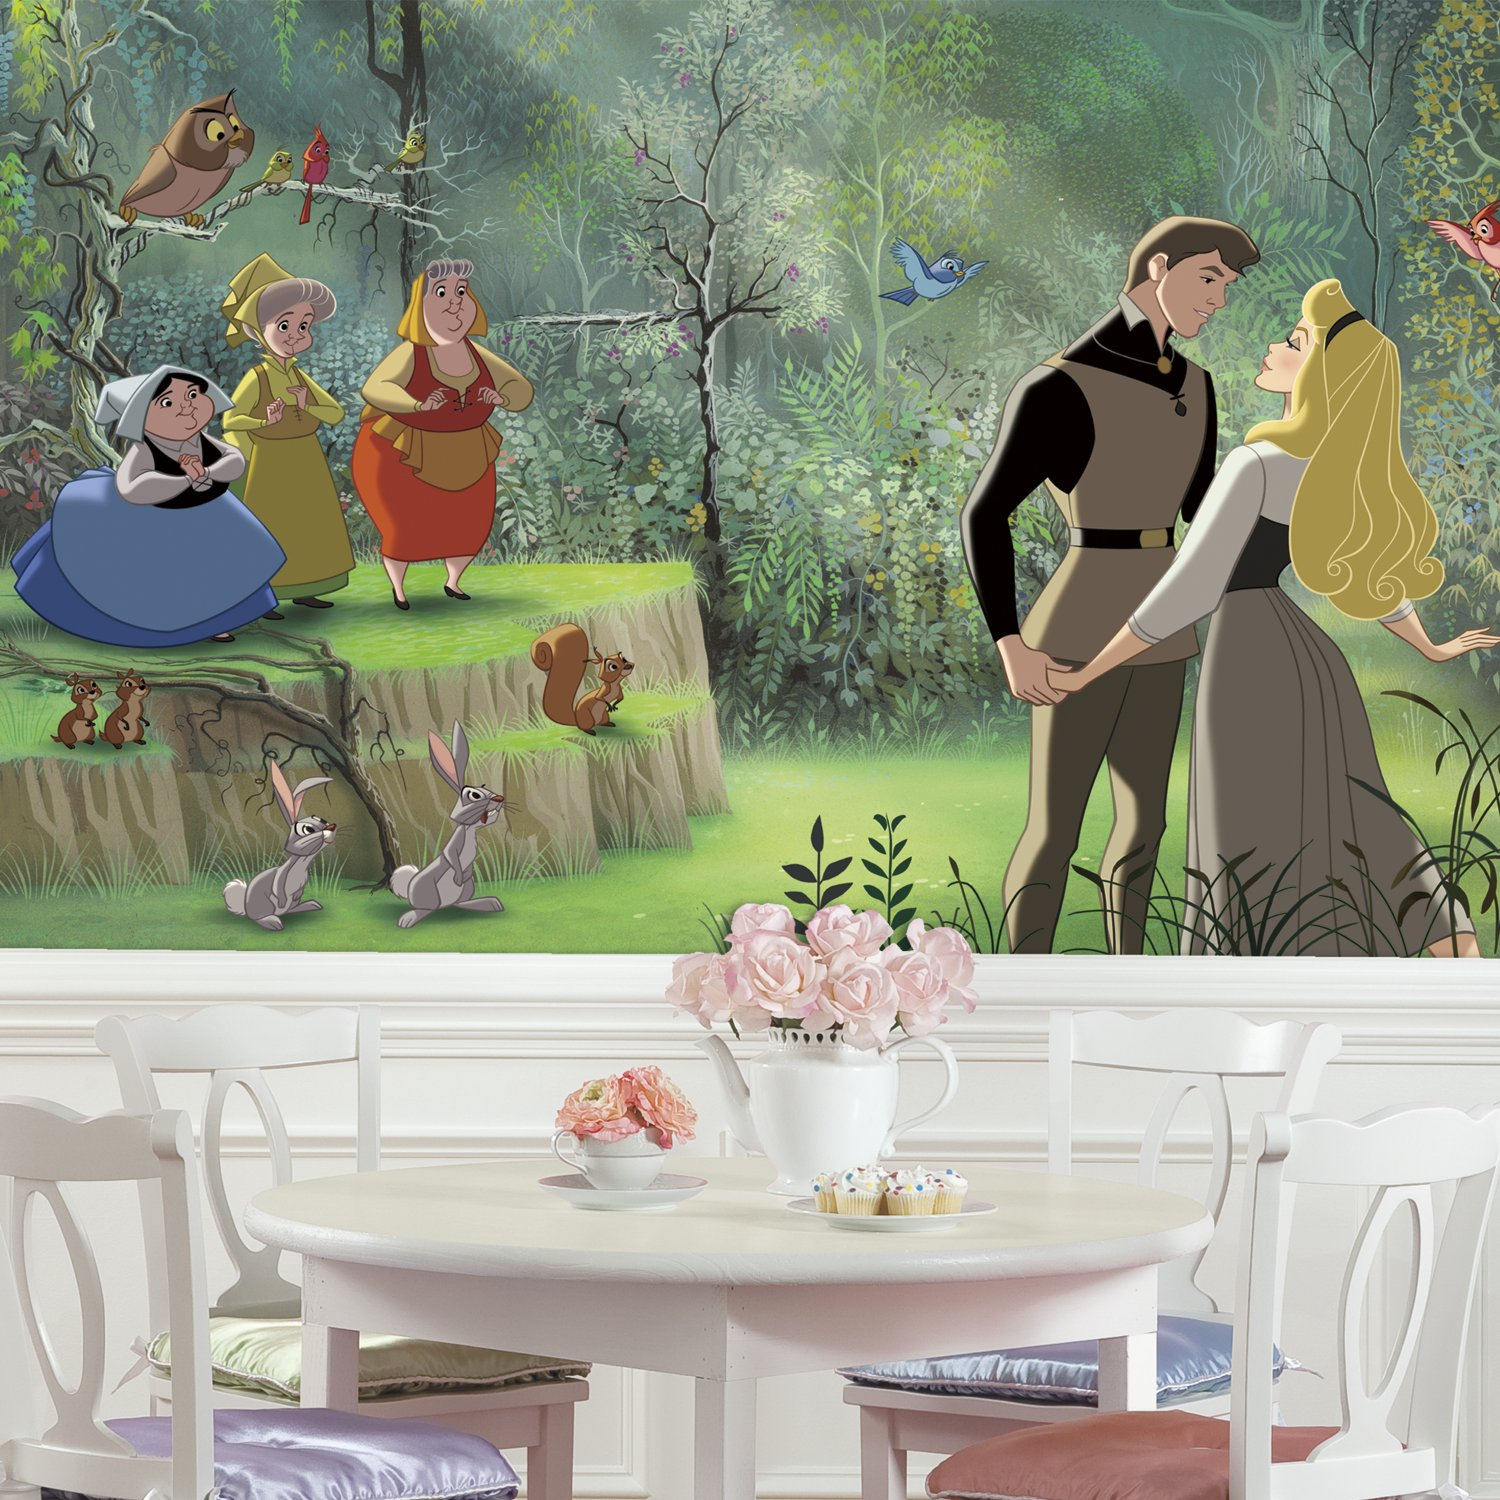 Wall Decals JL1379M RoomMates Disney Princess Sleeping Beauty Prepasted 6 X 10.5 Removable Wall Mural 6/' X 10.5/' York Wallcoverings Removable Wall Mural